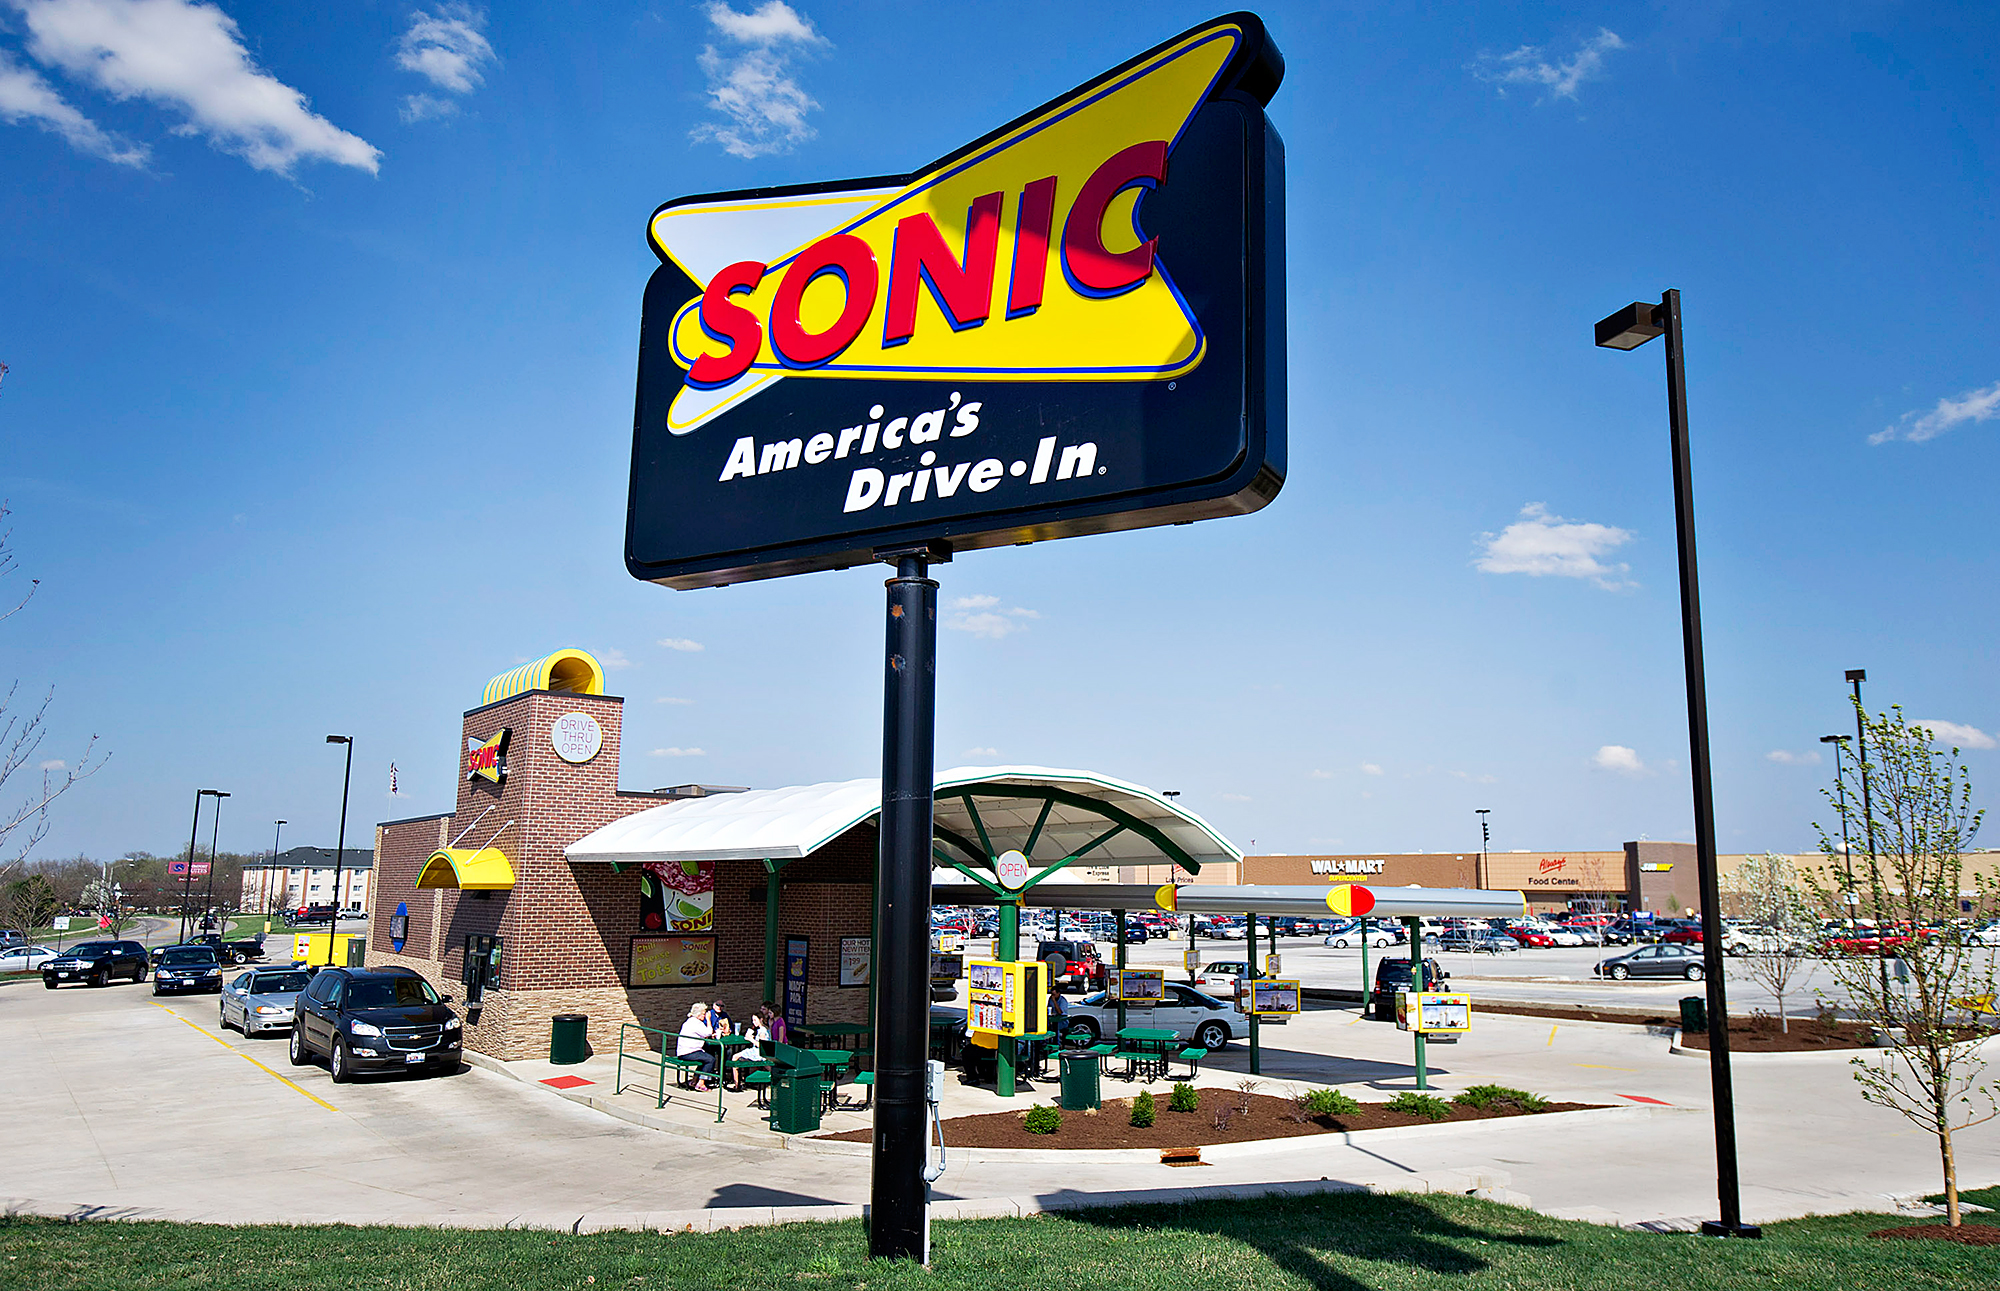 Flossy Via Getty Images Sonic Releases Pickle Juice Divides Twitter Sonic Slush Flavors Pickle Sonic Slush Flavors Polynesian Punch A Sonic Restaurant nice food Sonic Slush Flavors